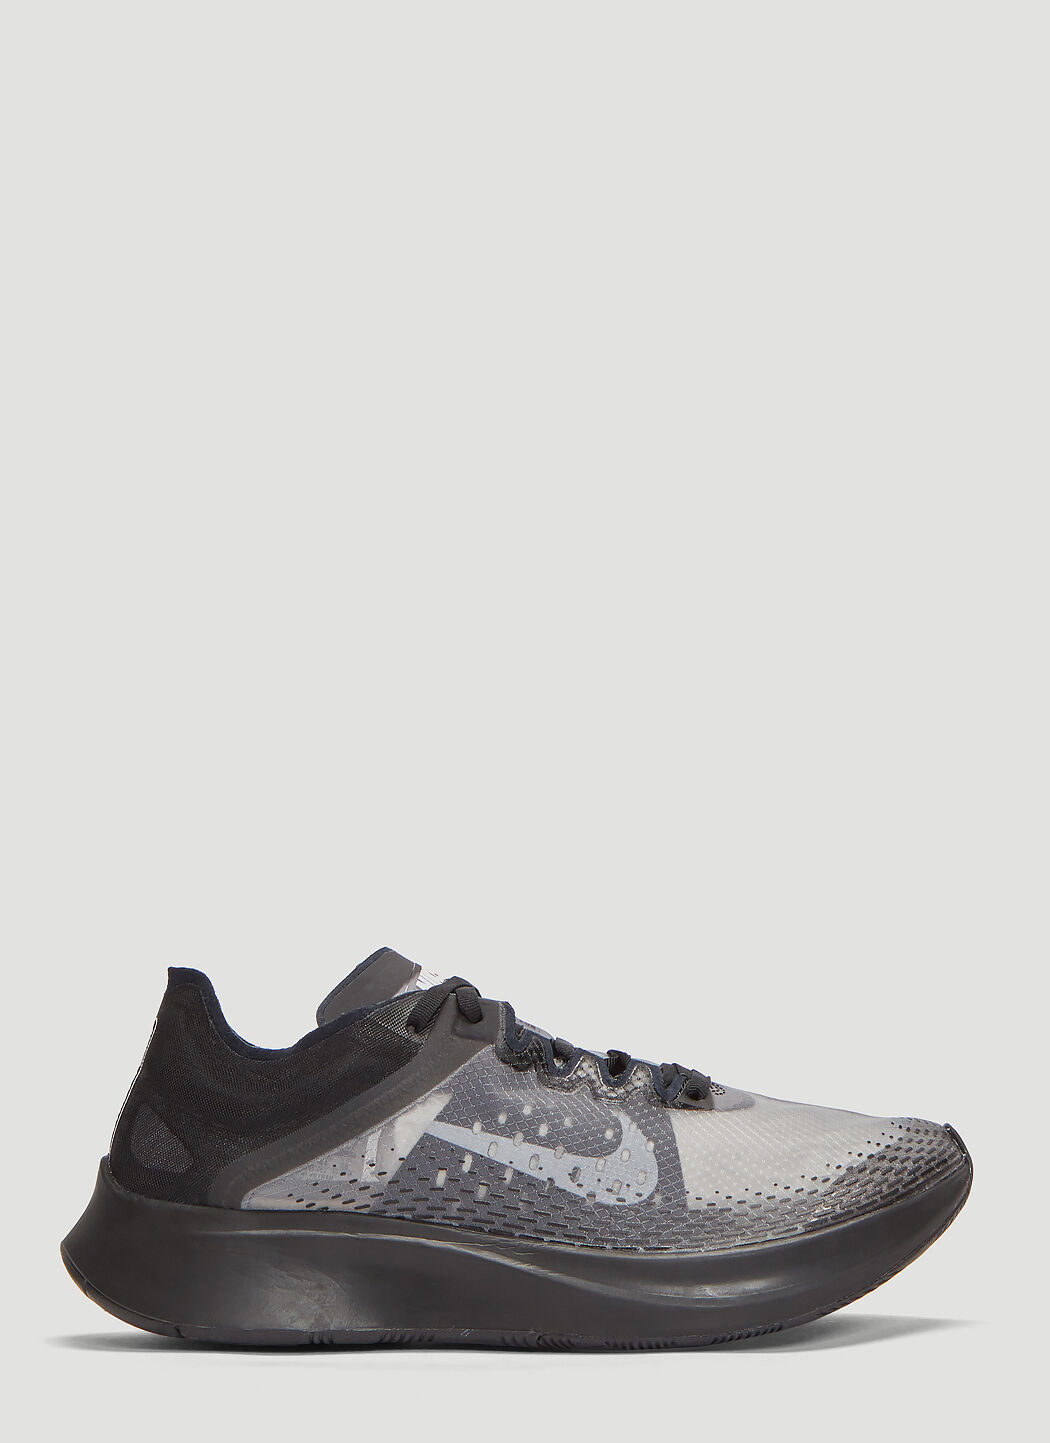 Nike Zoom Fly SP Fast Running Sneakers in Grey | LN CC